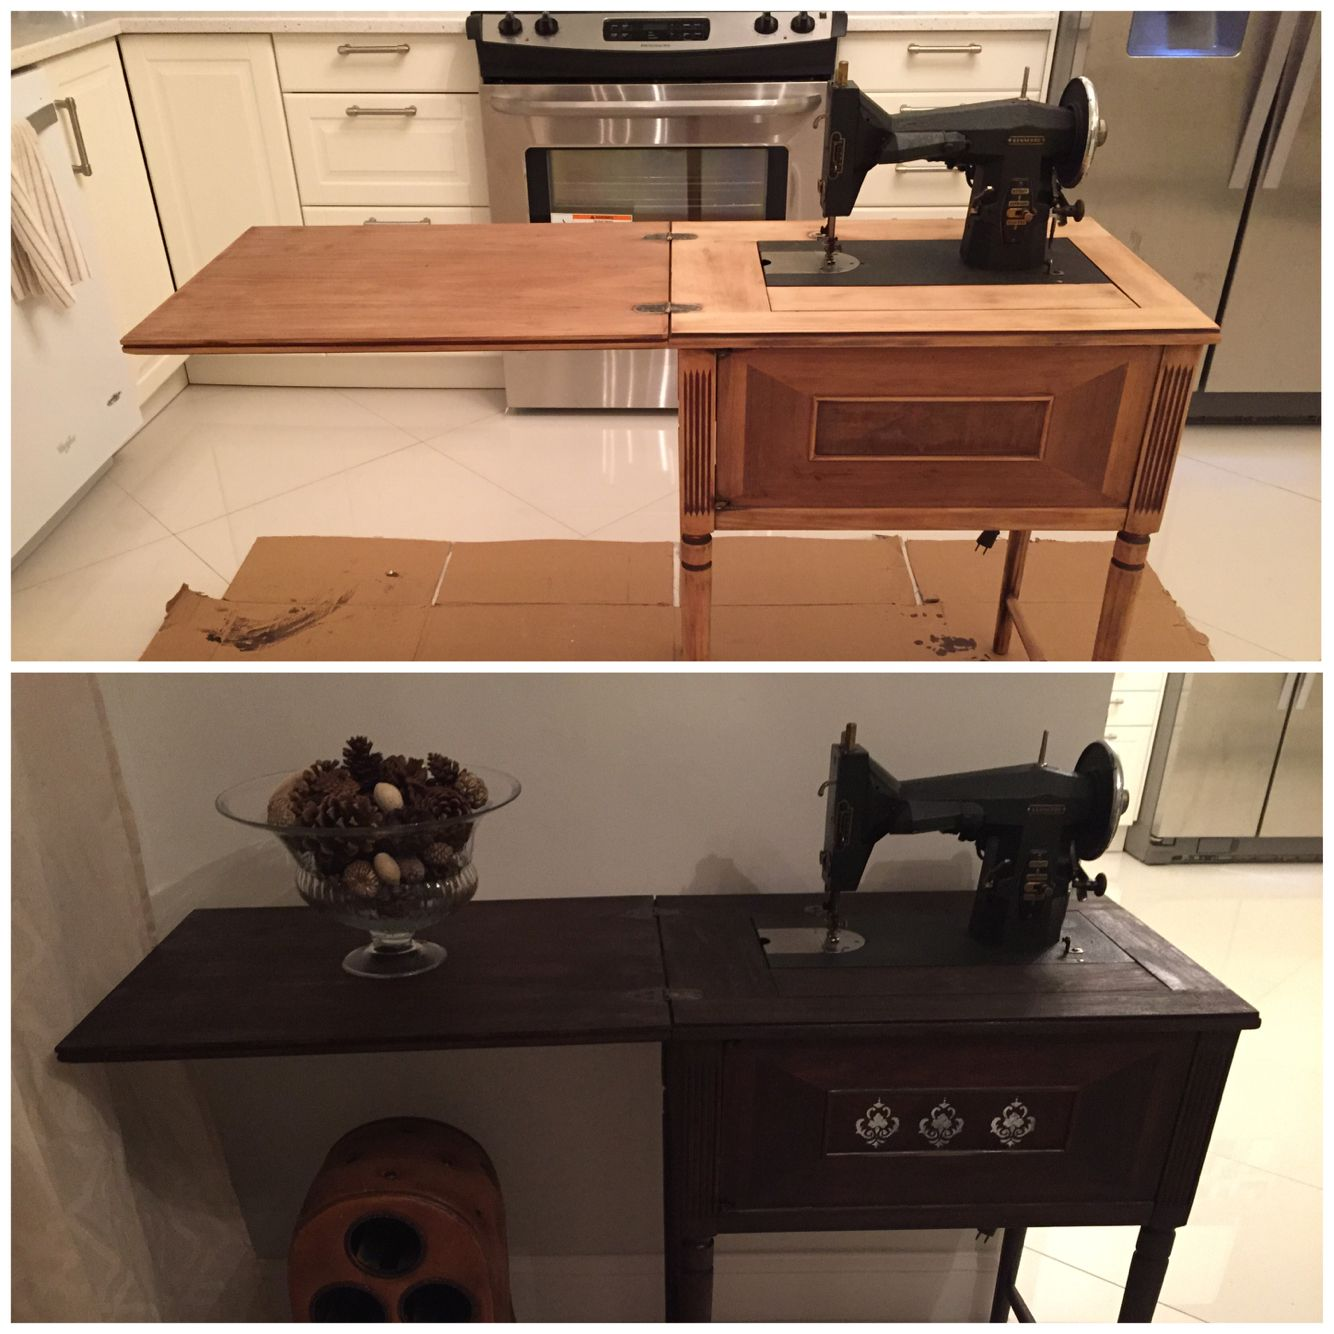 From Kenmore Sewing Machine To Buffet Table For My Dining Room